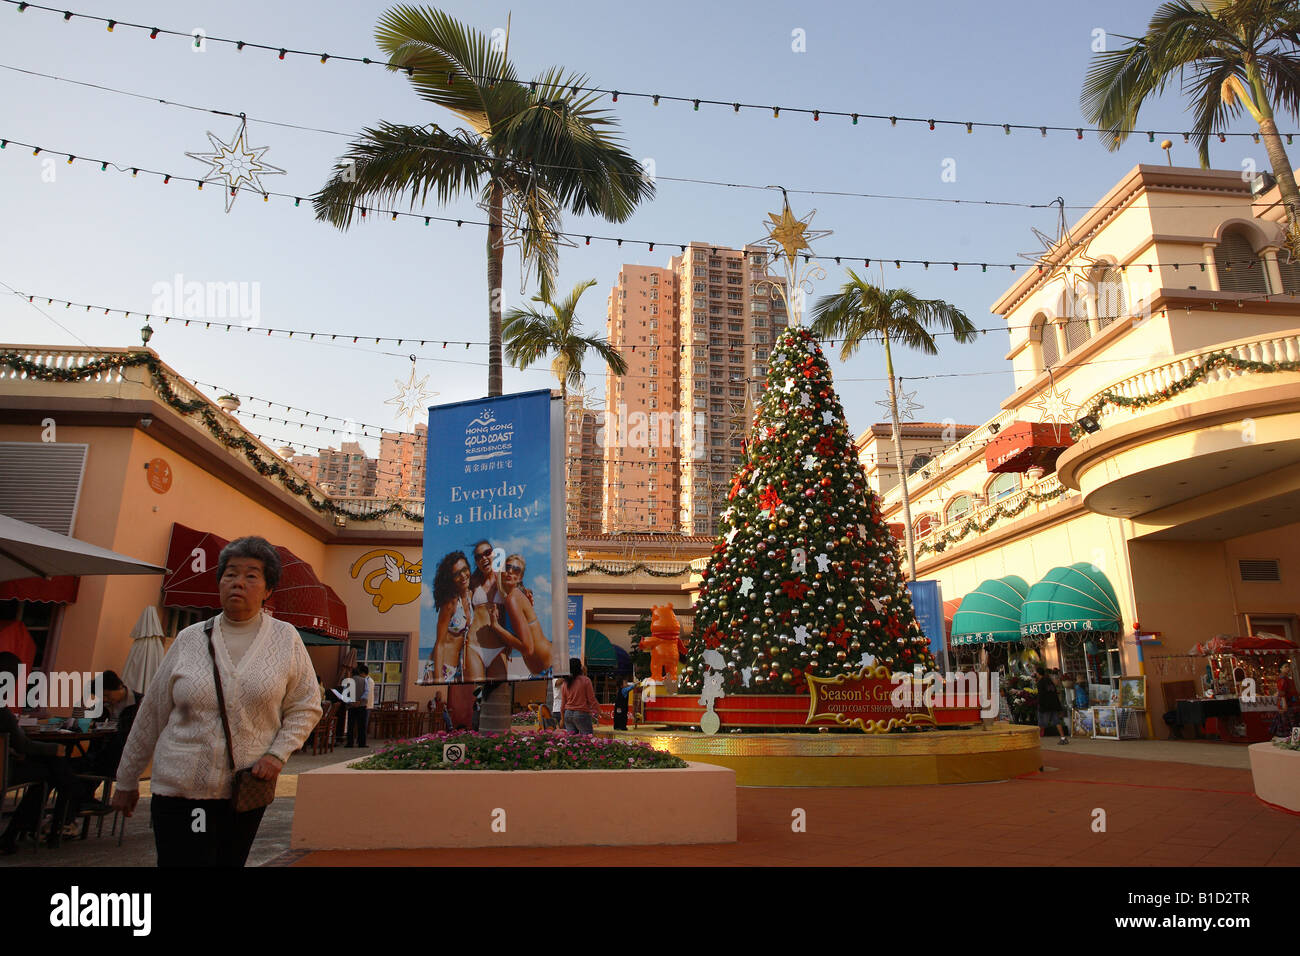 Christmas Tree In A Shopping Arcade In A Ritzy Residential Quarter, Hong  Kong, China